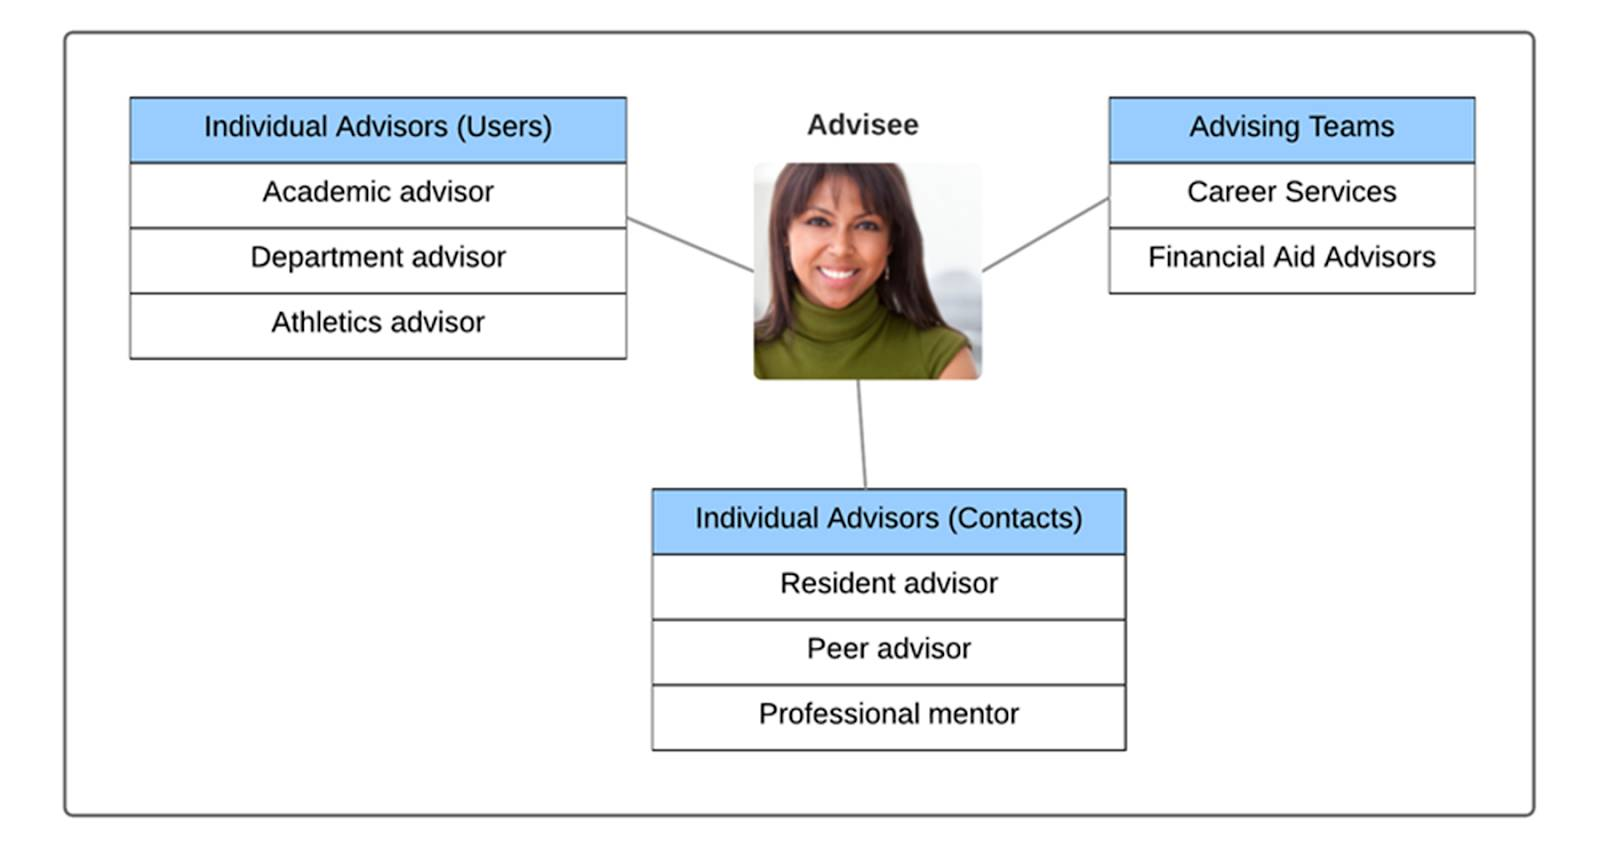 A diagram of Success Teams with the Advisee in the center and 3 branches: Individual Advisors (Users), Advising Teams, and Individual Advisors (Contacts). The Individual Advisors (Users) branch includes Academic advisor, Department advisor, and Athletics advisor. The Advising Teams branch includes Career Services and Financial Aid Advisors. The Individual Advisors (Contacts) branch includes Resident advisor, Peer advisor, and Professional mentor.